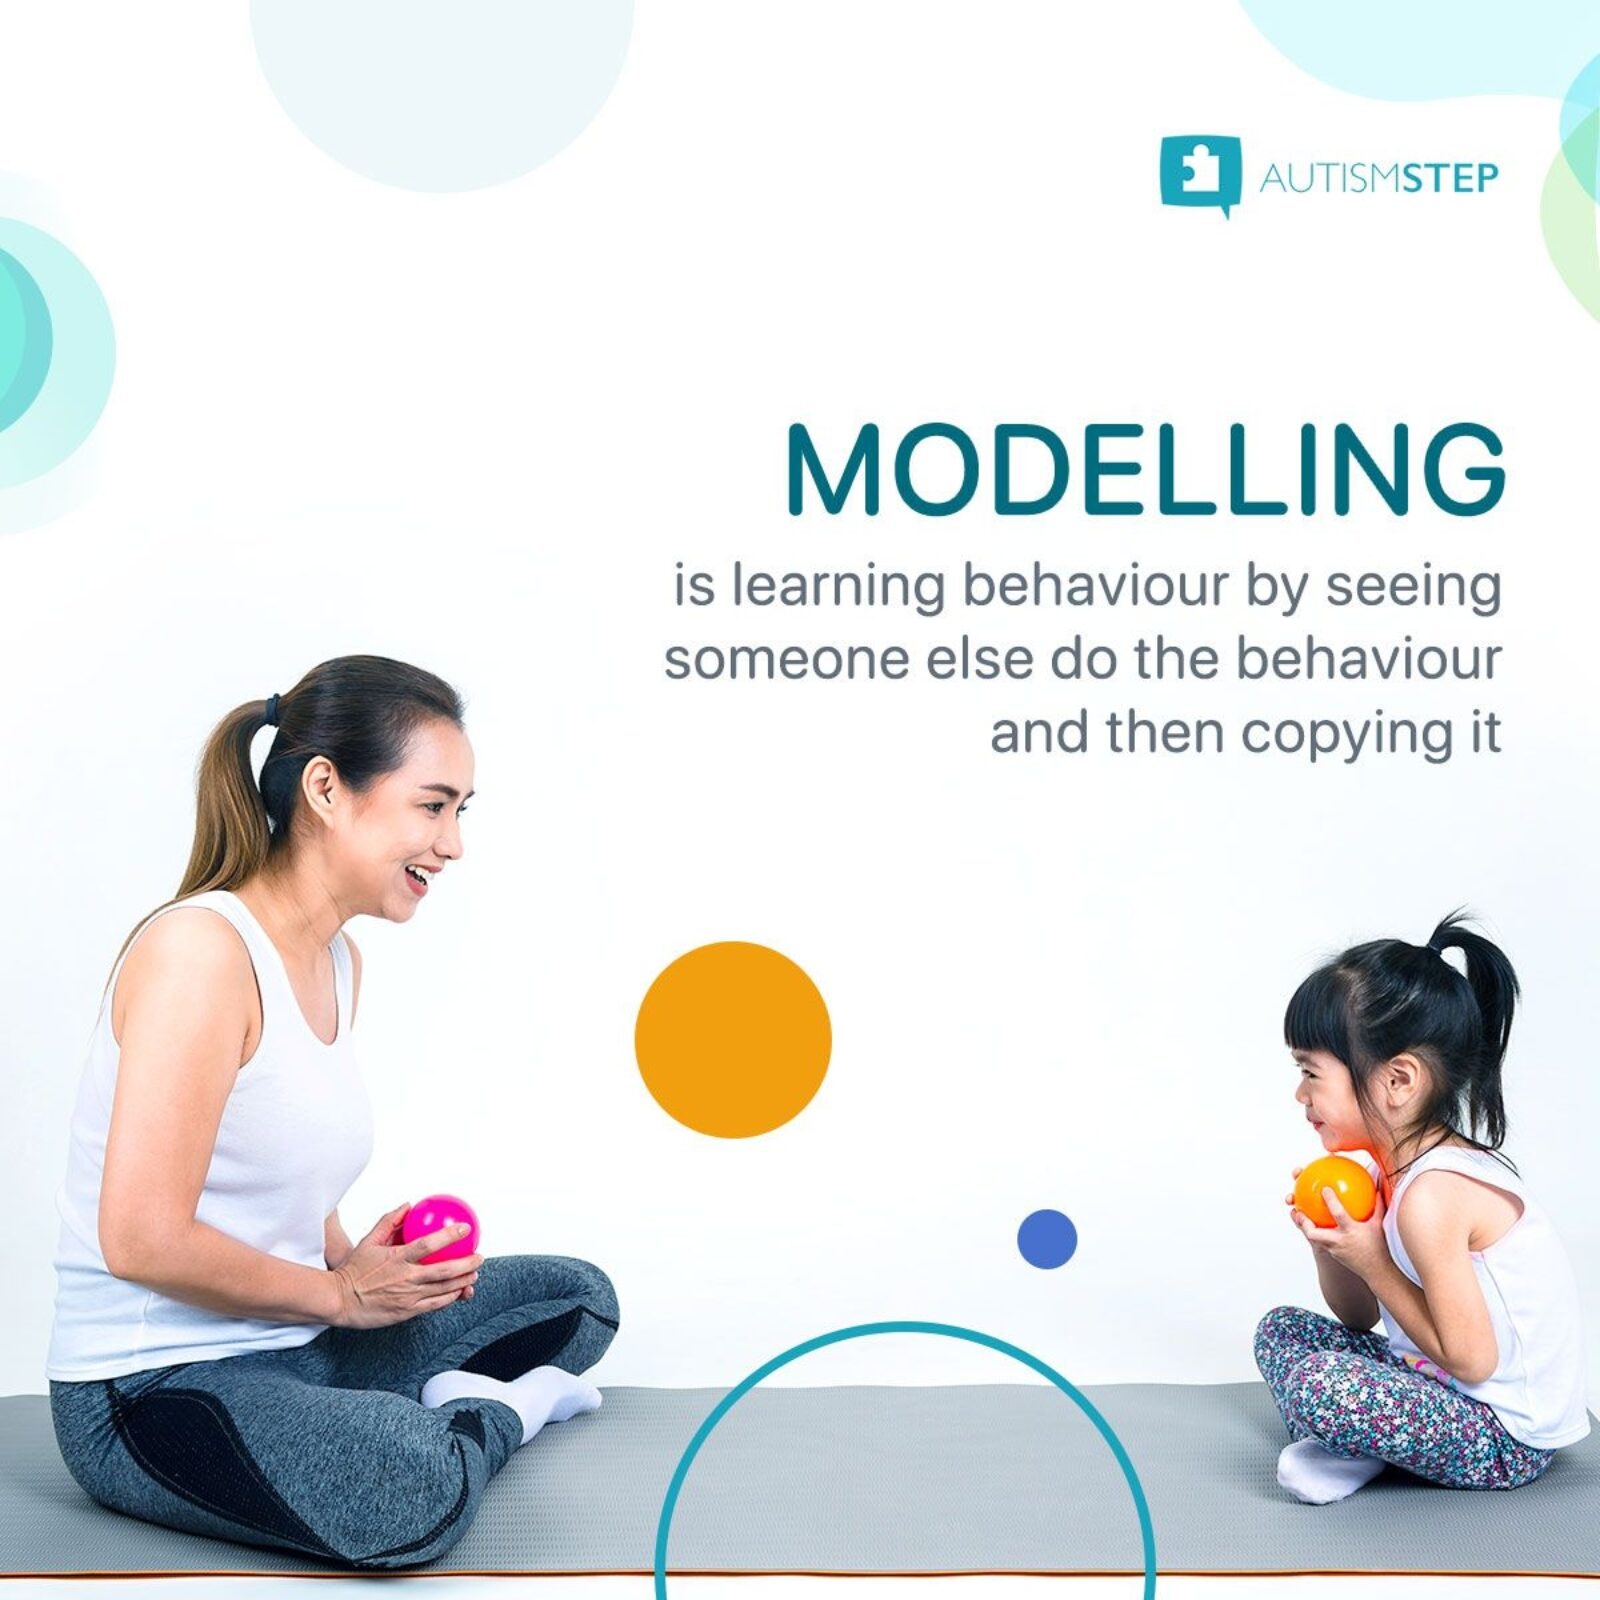 AutismSTEP - Modelling Techniques For Children With Autism